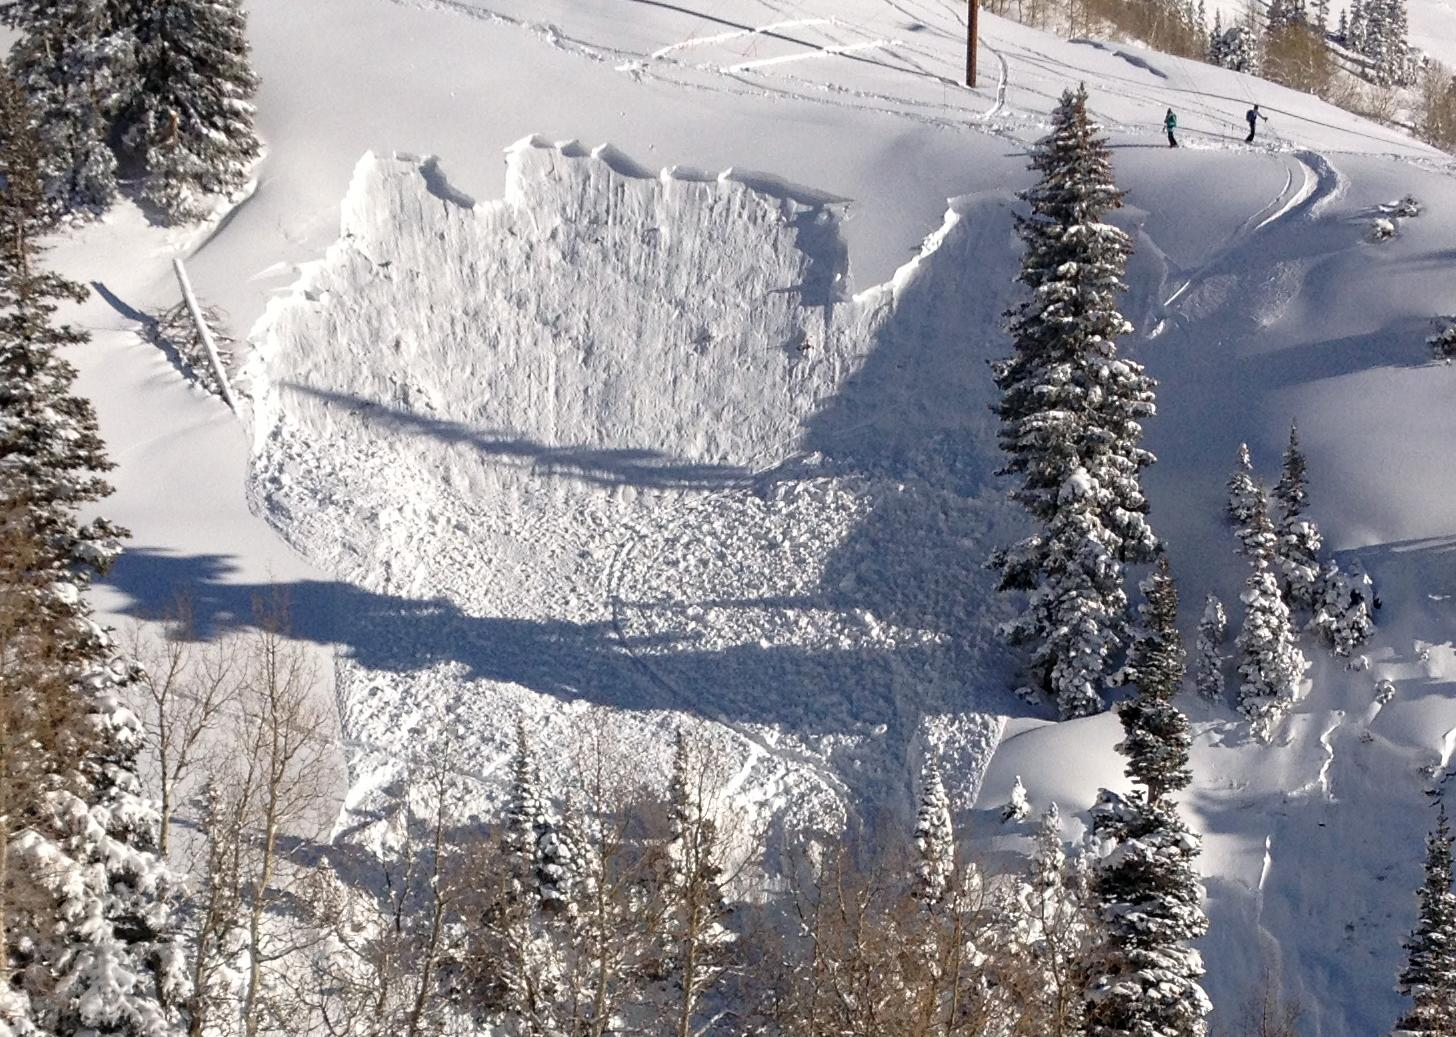 In this photo provided by Joseph Campanelli, the second in a sequence of three images, a skier is buried in an avalanche she triggered in a steep ravine in Grizzly Gulch, just outside the Alta ski area east of Salt Lake City, Monday, Dec. 9, 2013. The woman survived because she deployed a special air bag and other skiers were able to quickly dig her out. It was the first time this season that a person has been caught in an avalanche in the state. Authorities say say she could've been trapped longer under much deeper snow without the air bag. (AP Photo/Joseph Campanelli)